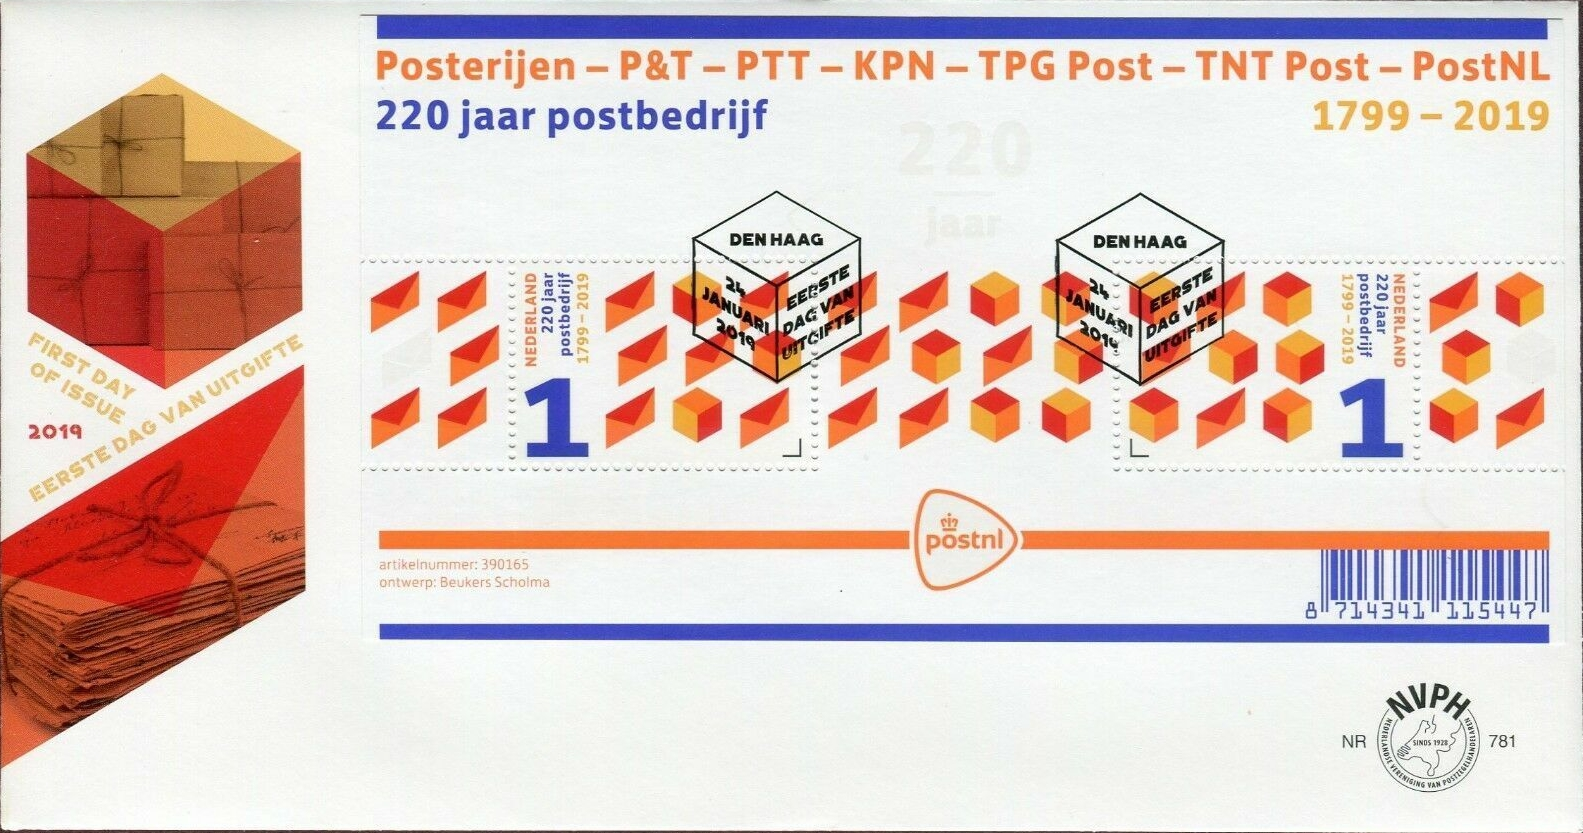 Netherlands - 220 Years of Postal Service (January 24, 2019) first day cover